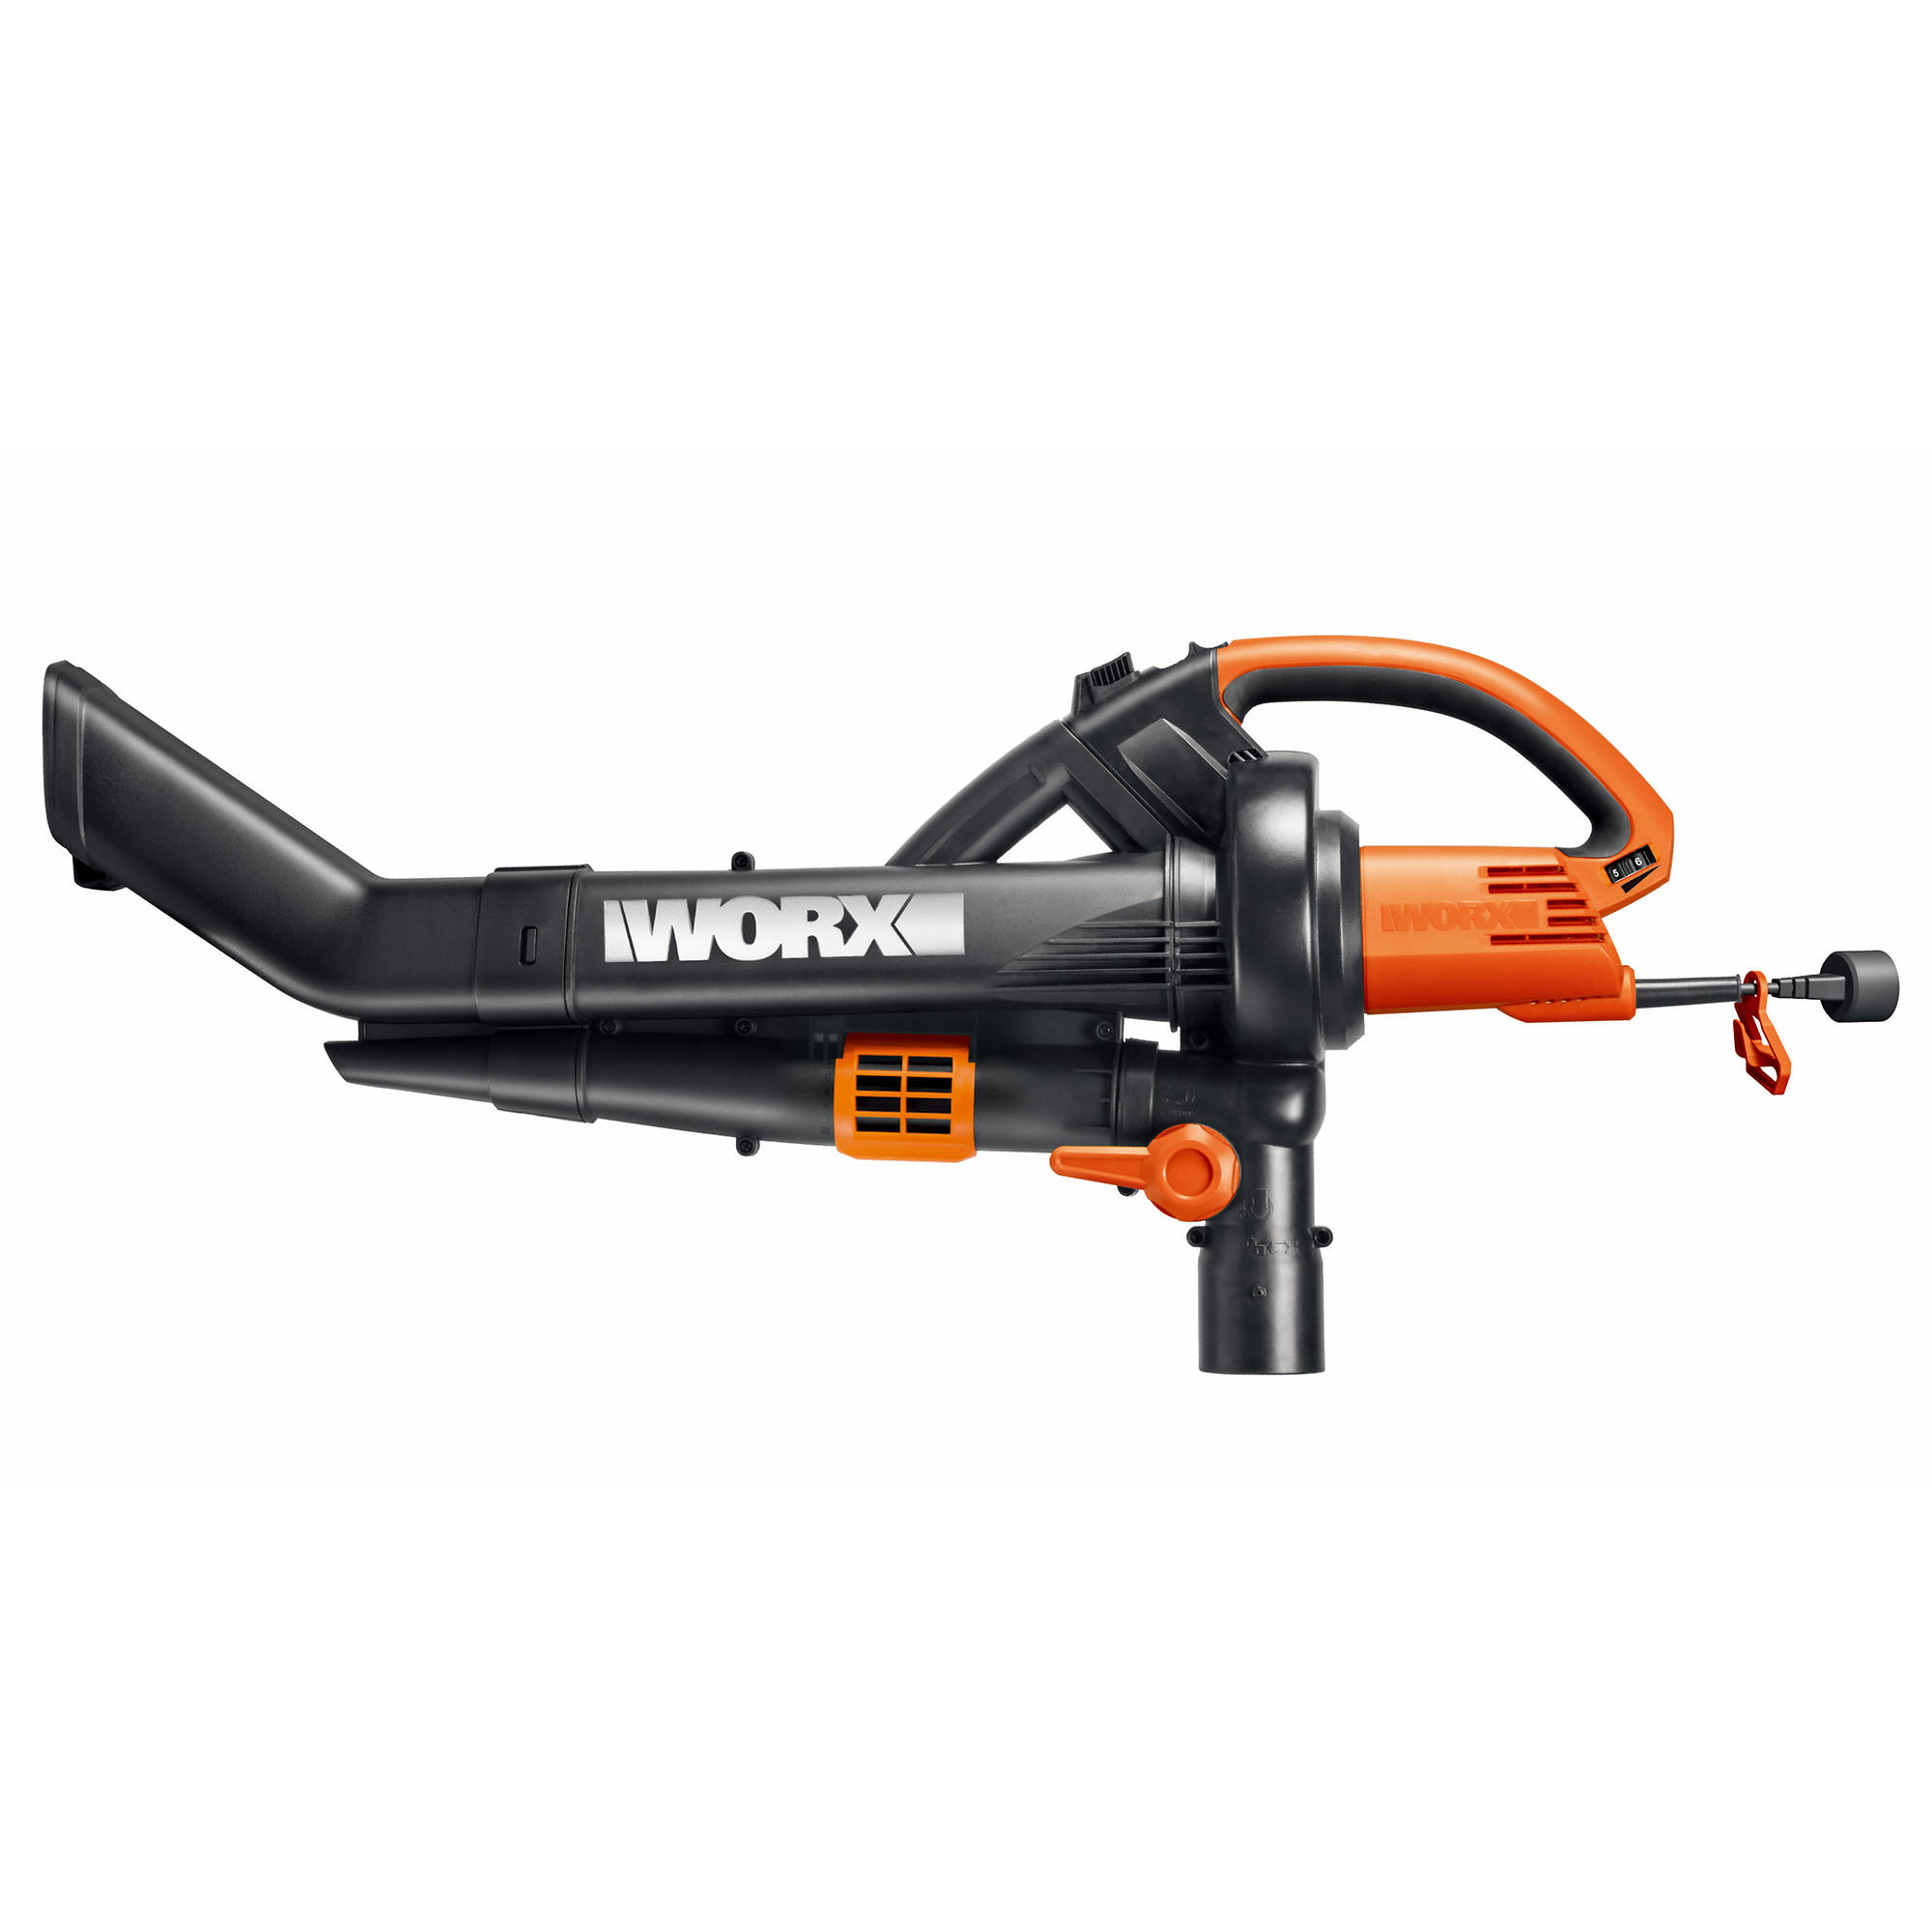 Worx Leaf Blower And Vacuum : Worx electric trivac all in one blower mulcher and vacuum